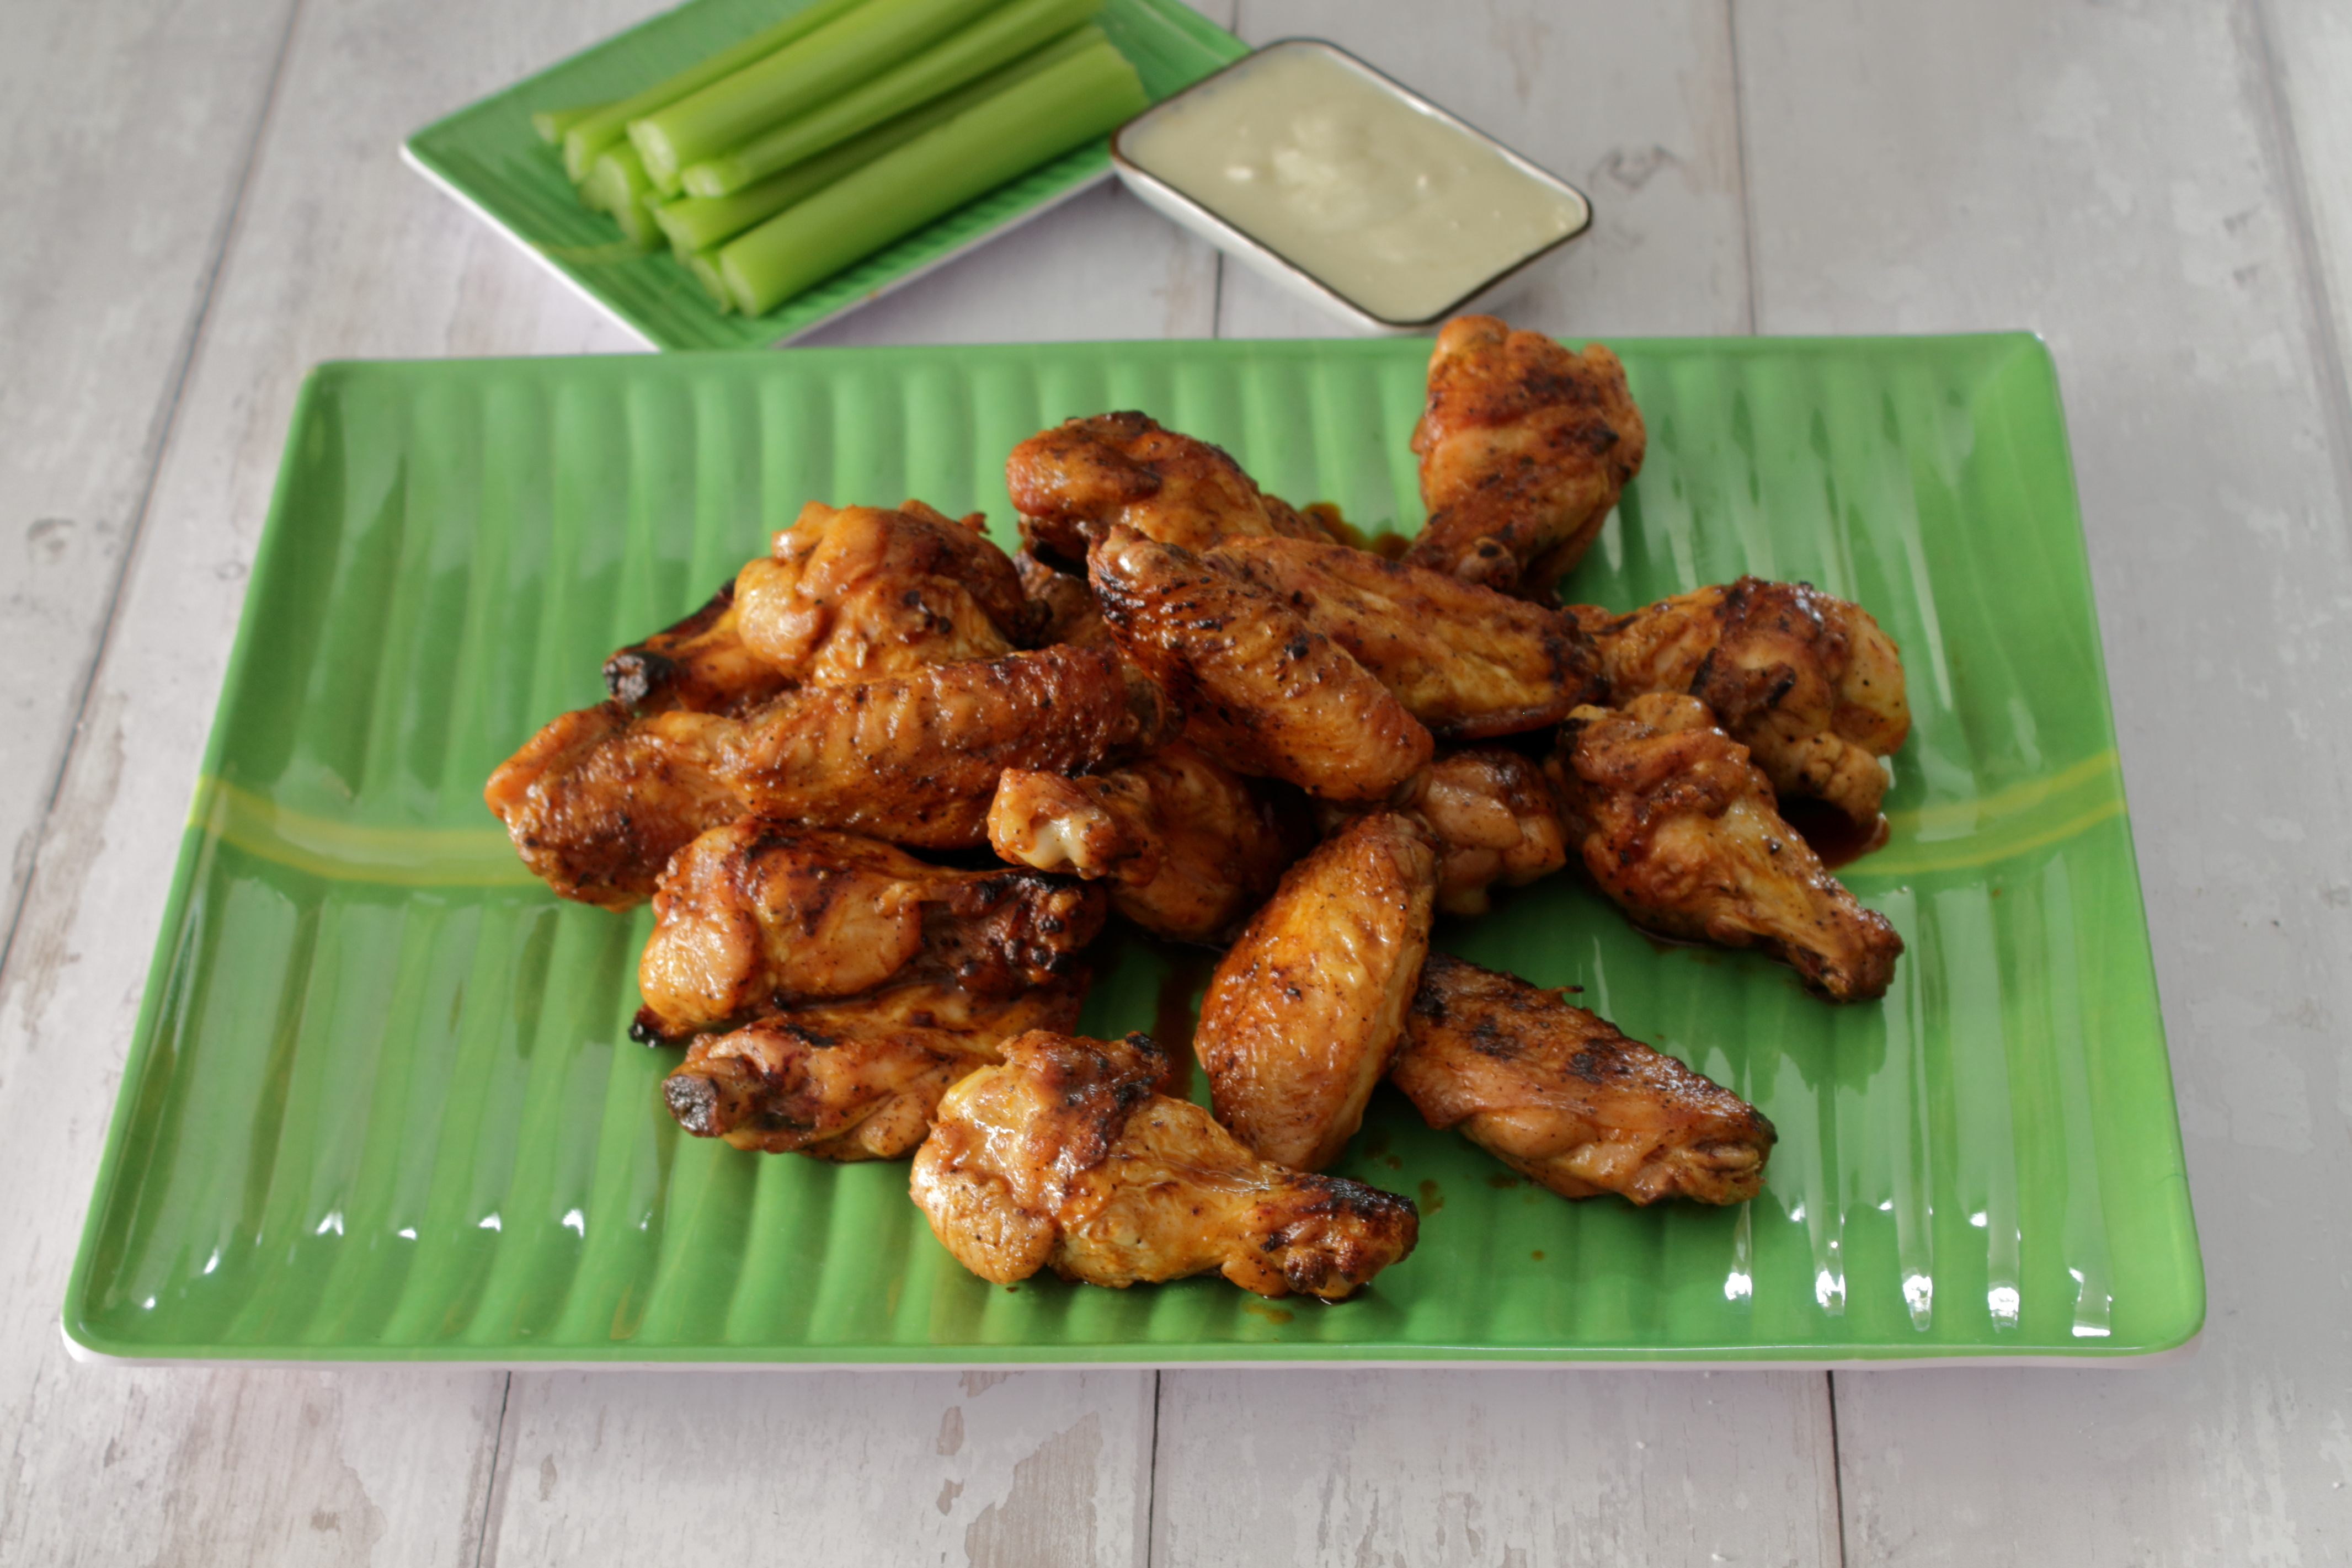 Grilled Hot Wings on a Banana Leaf Plate